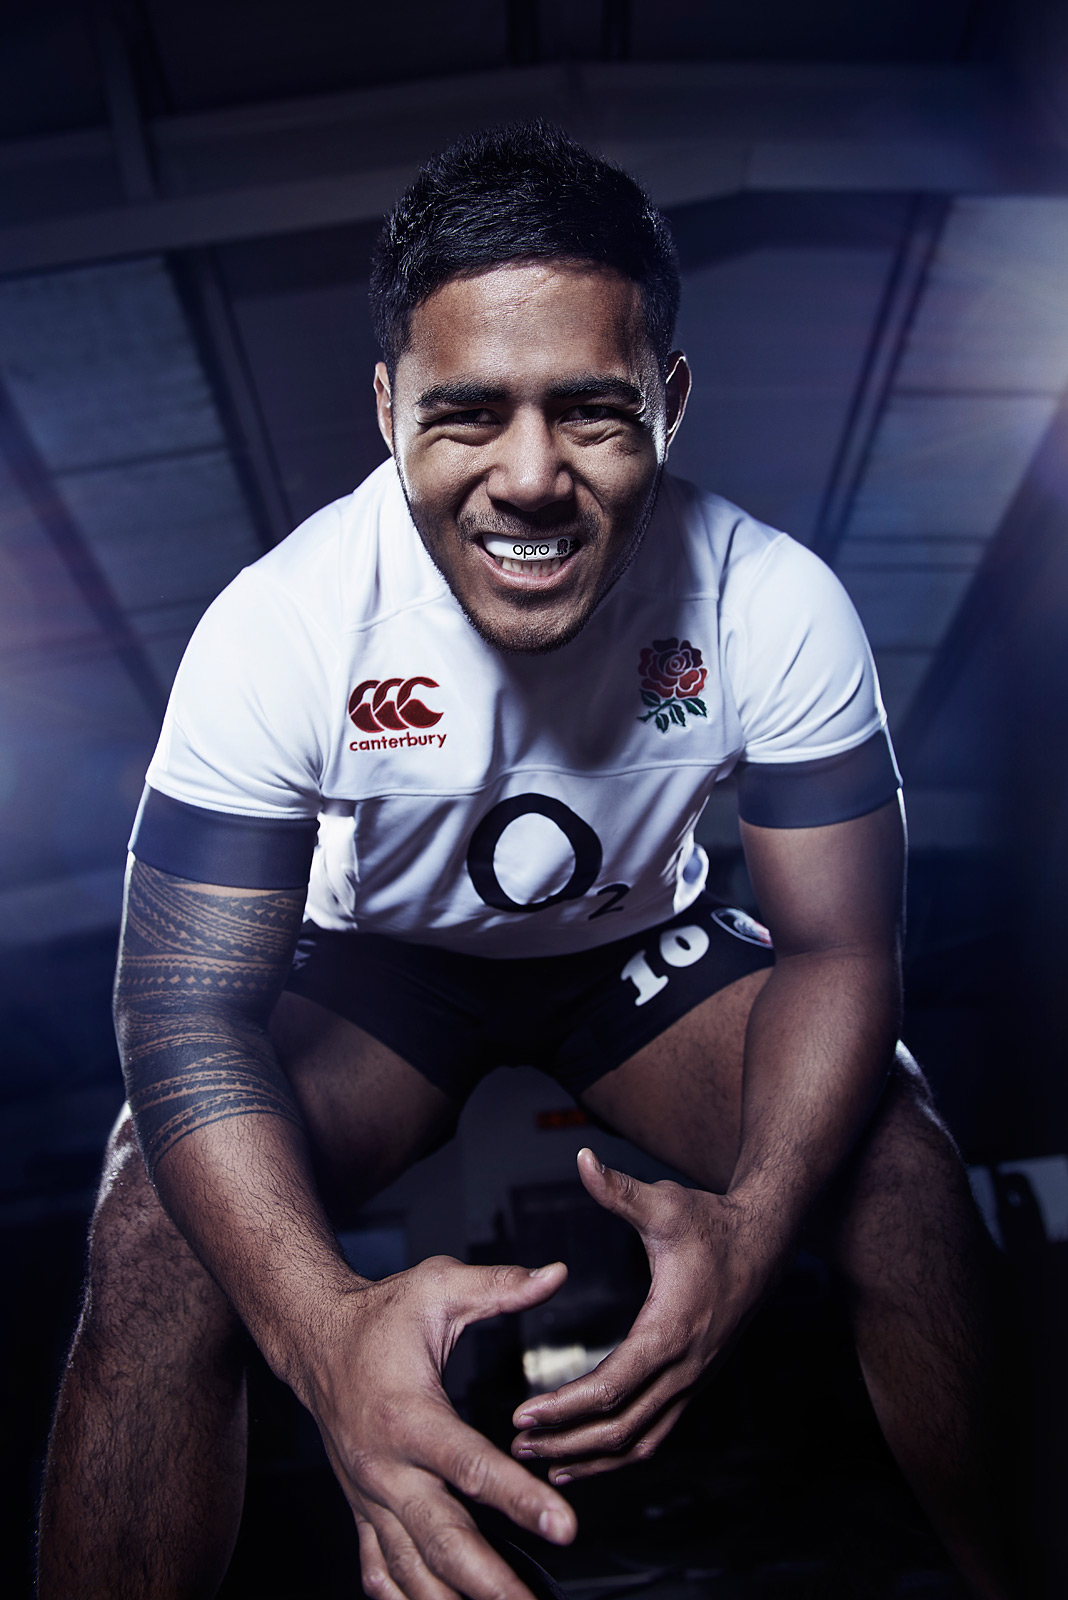 Manu Tuilagi leaning over the camera